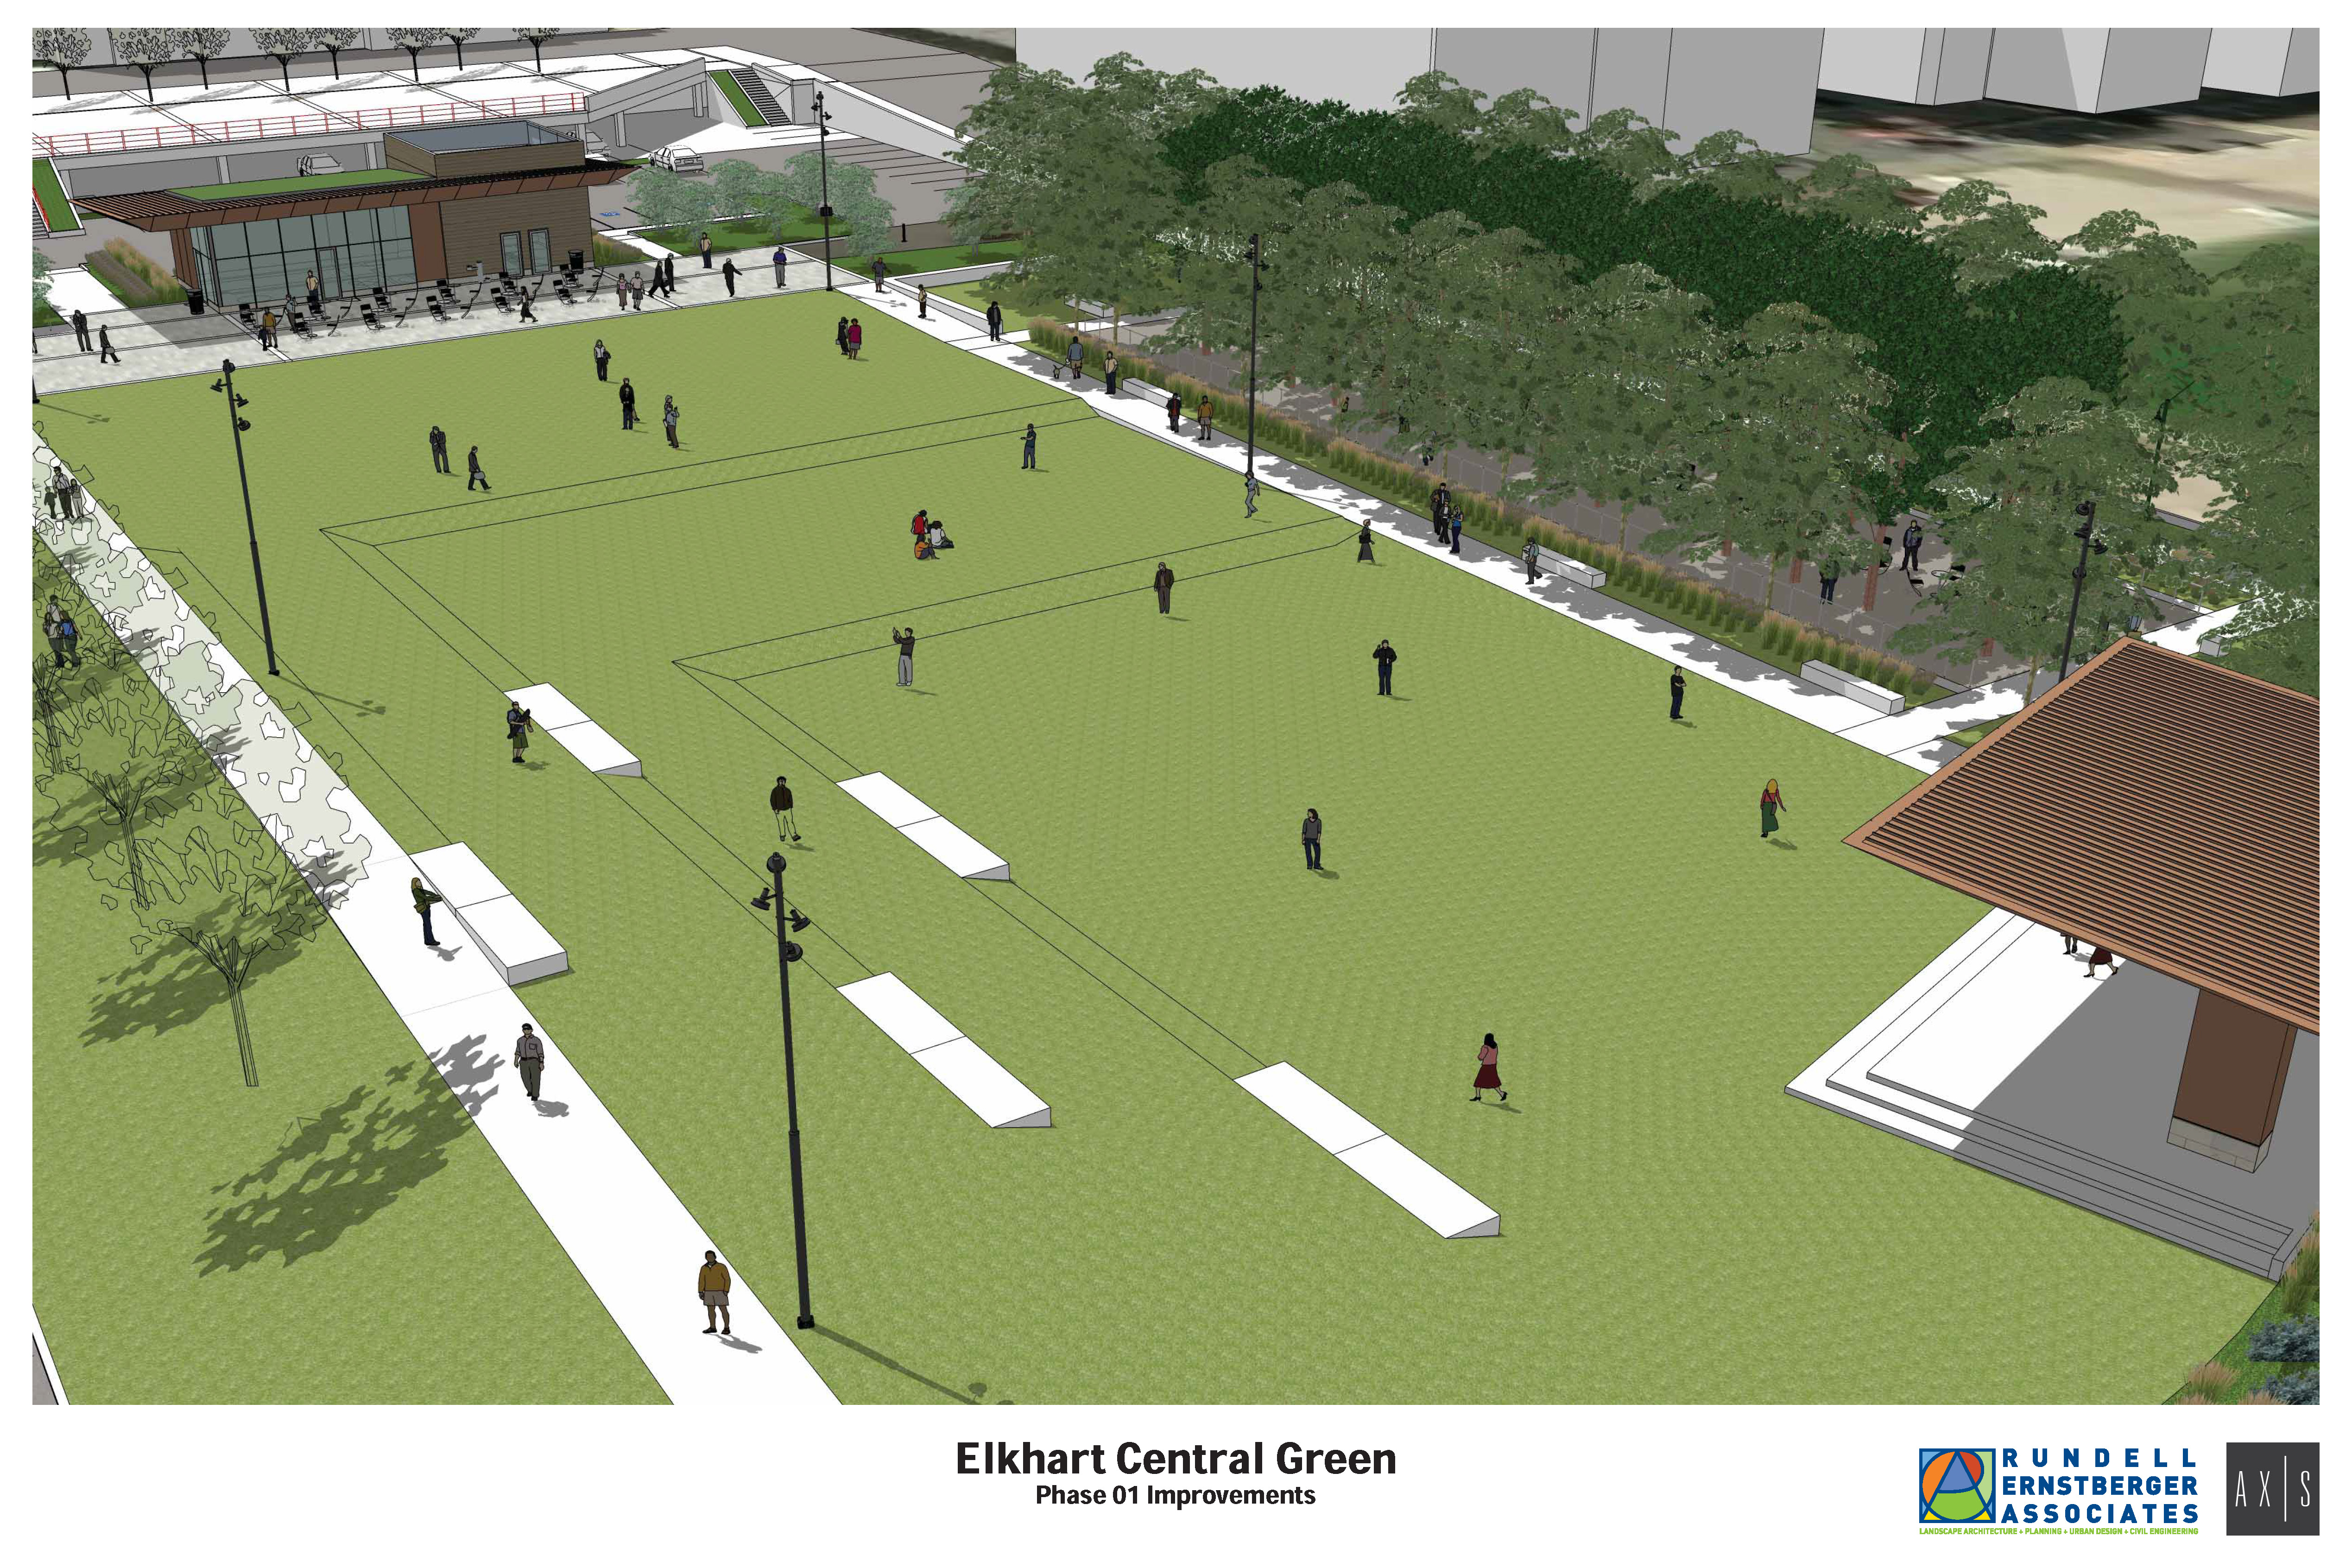 Stage, cafe highlight proposed improvements to Elkhart's Central Park